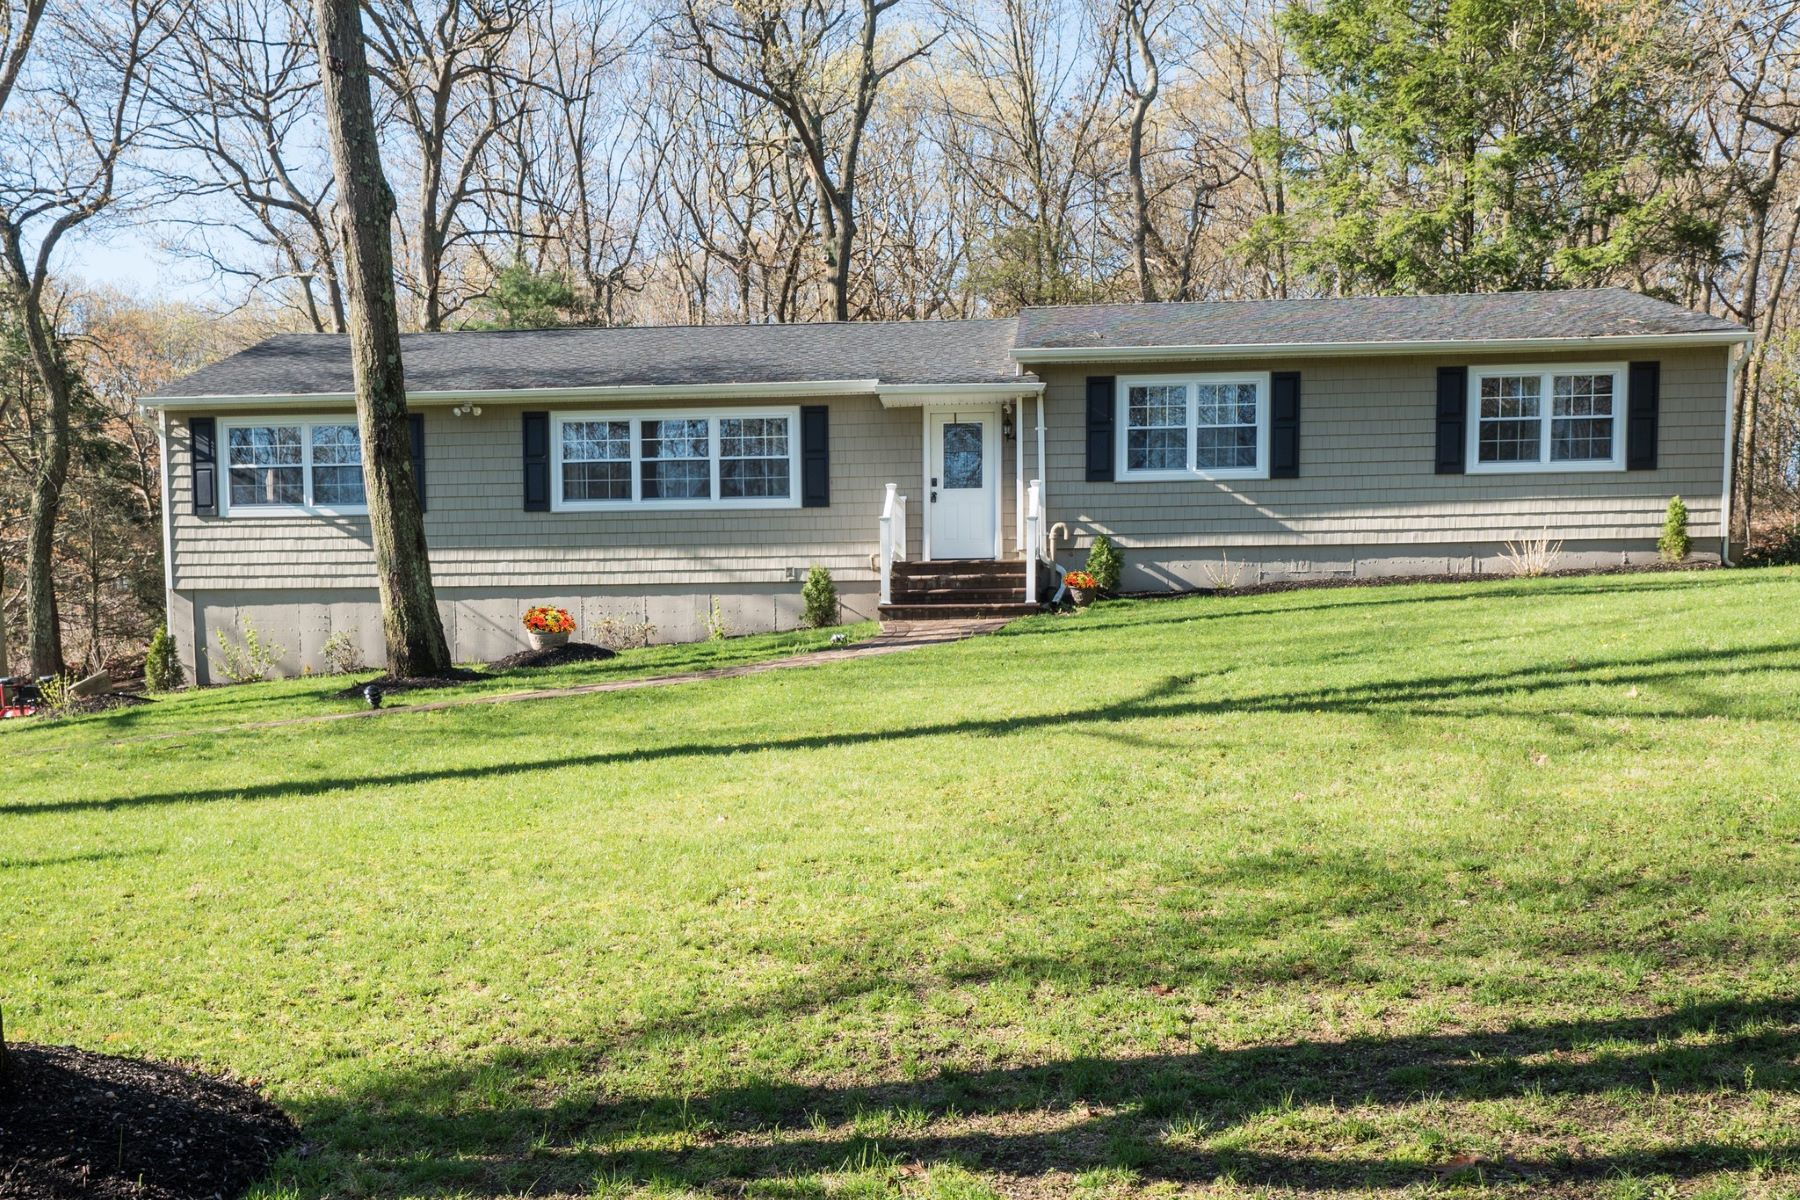 Single Family Homes for Sale at E. Northport 190 Daly Rd East Northport, New York 11731 United States